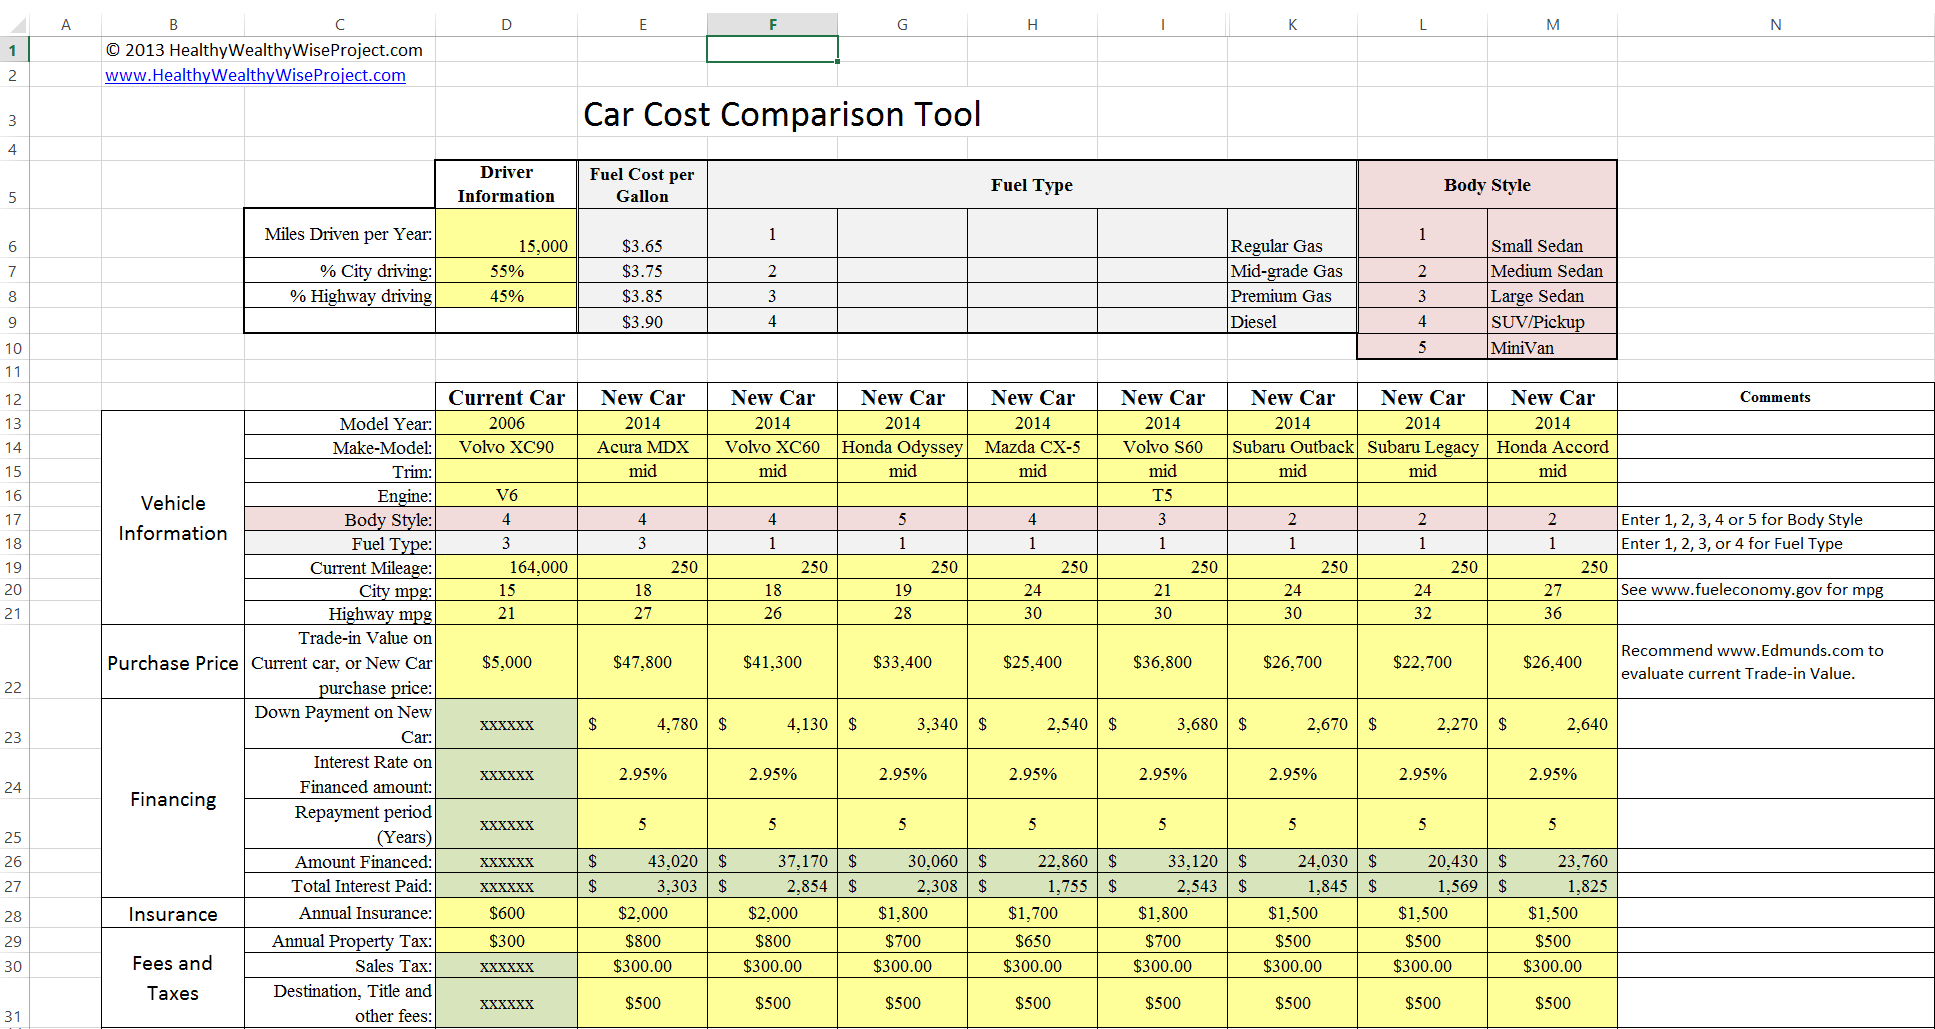 Option trading cost comparison